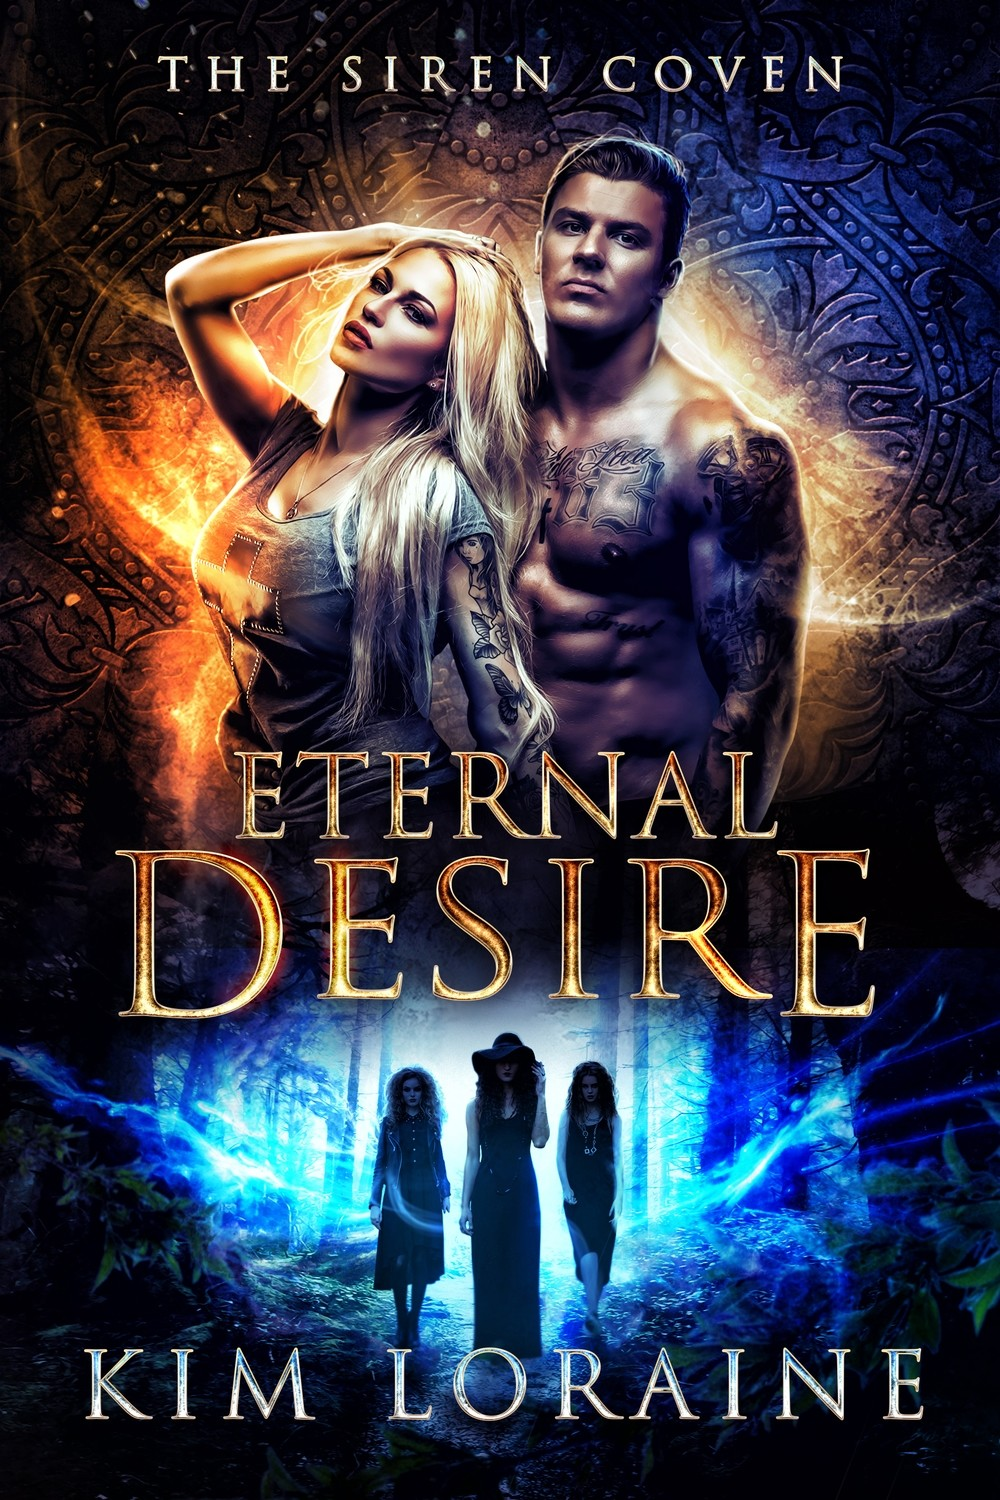 Eternal Desire - SIGNED UNICORN COVER